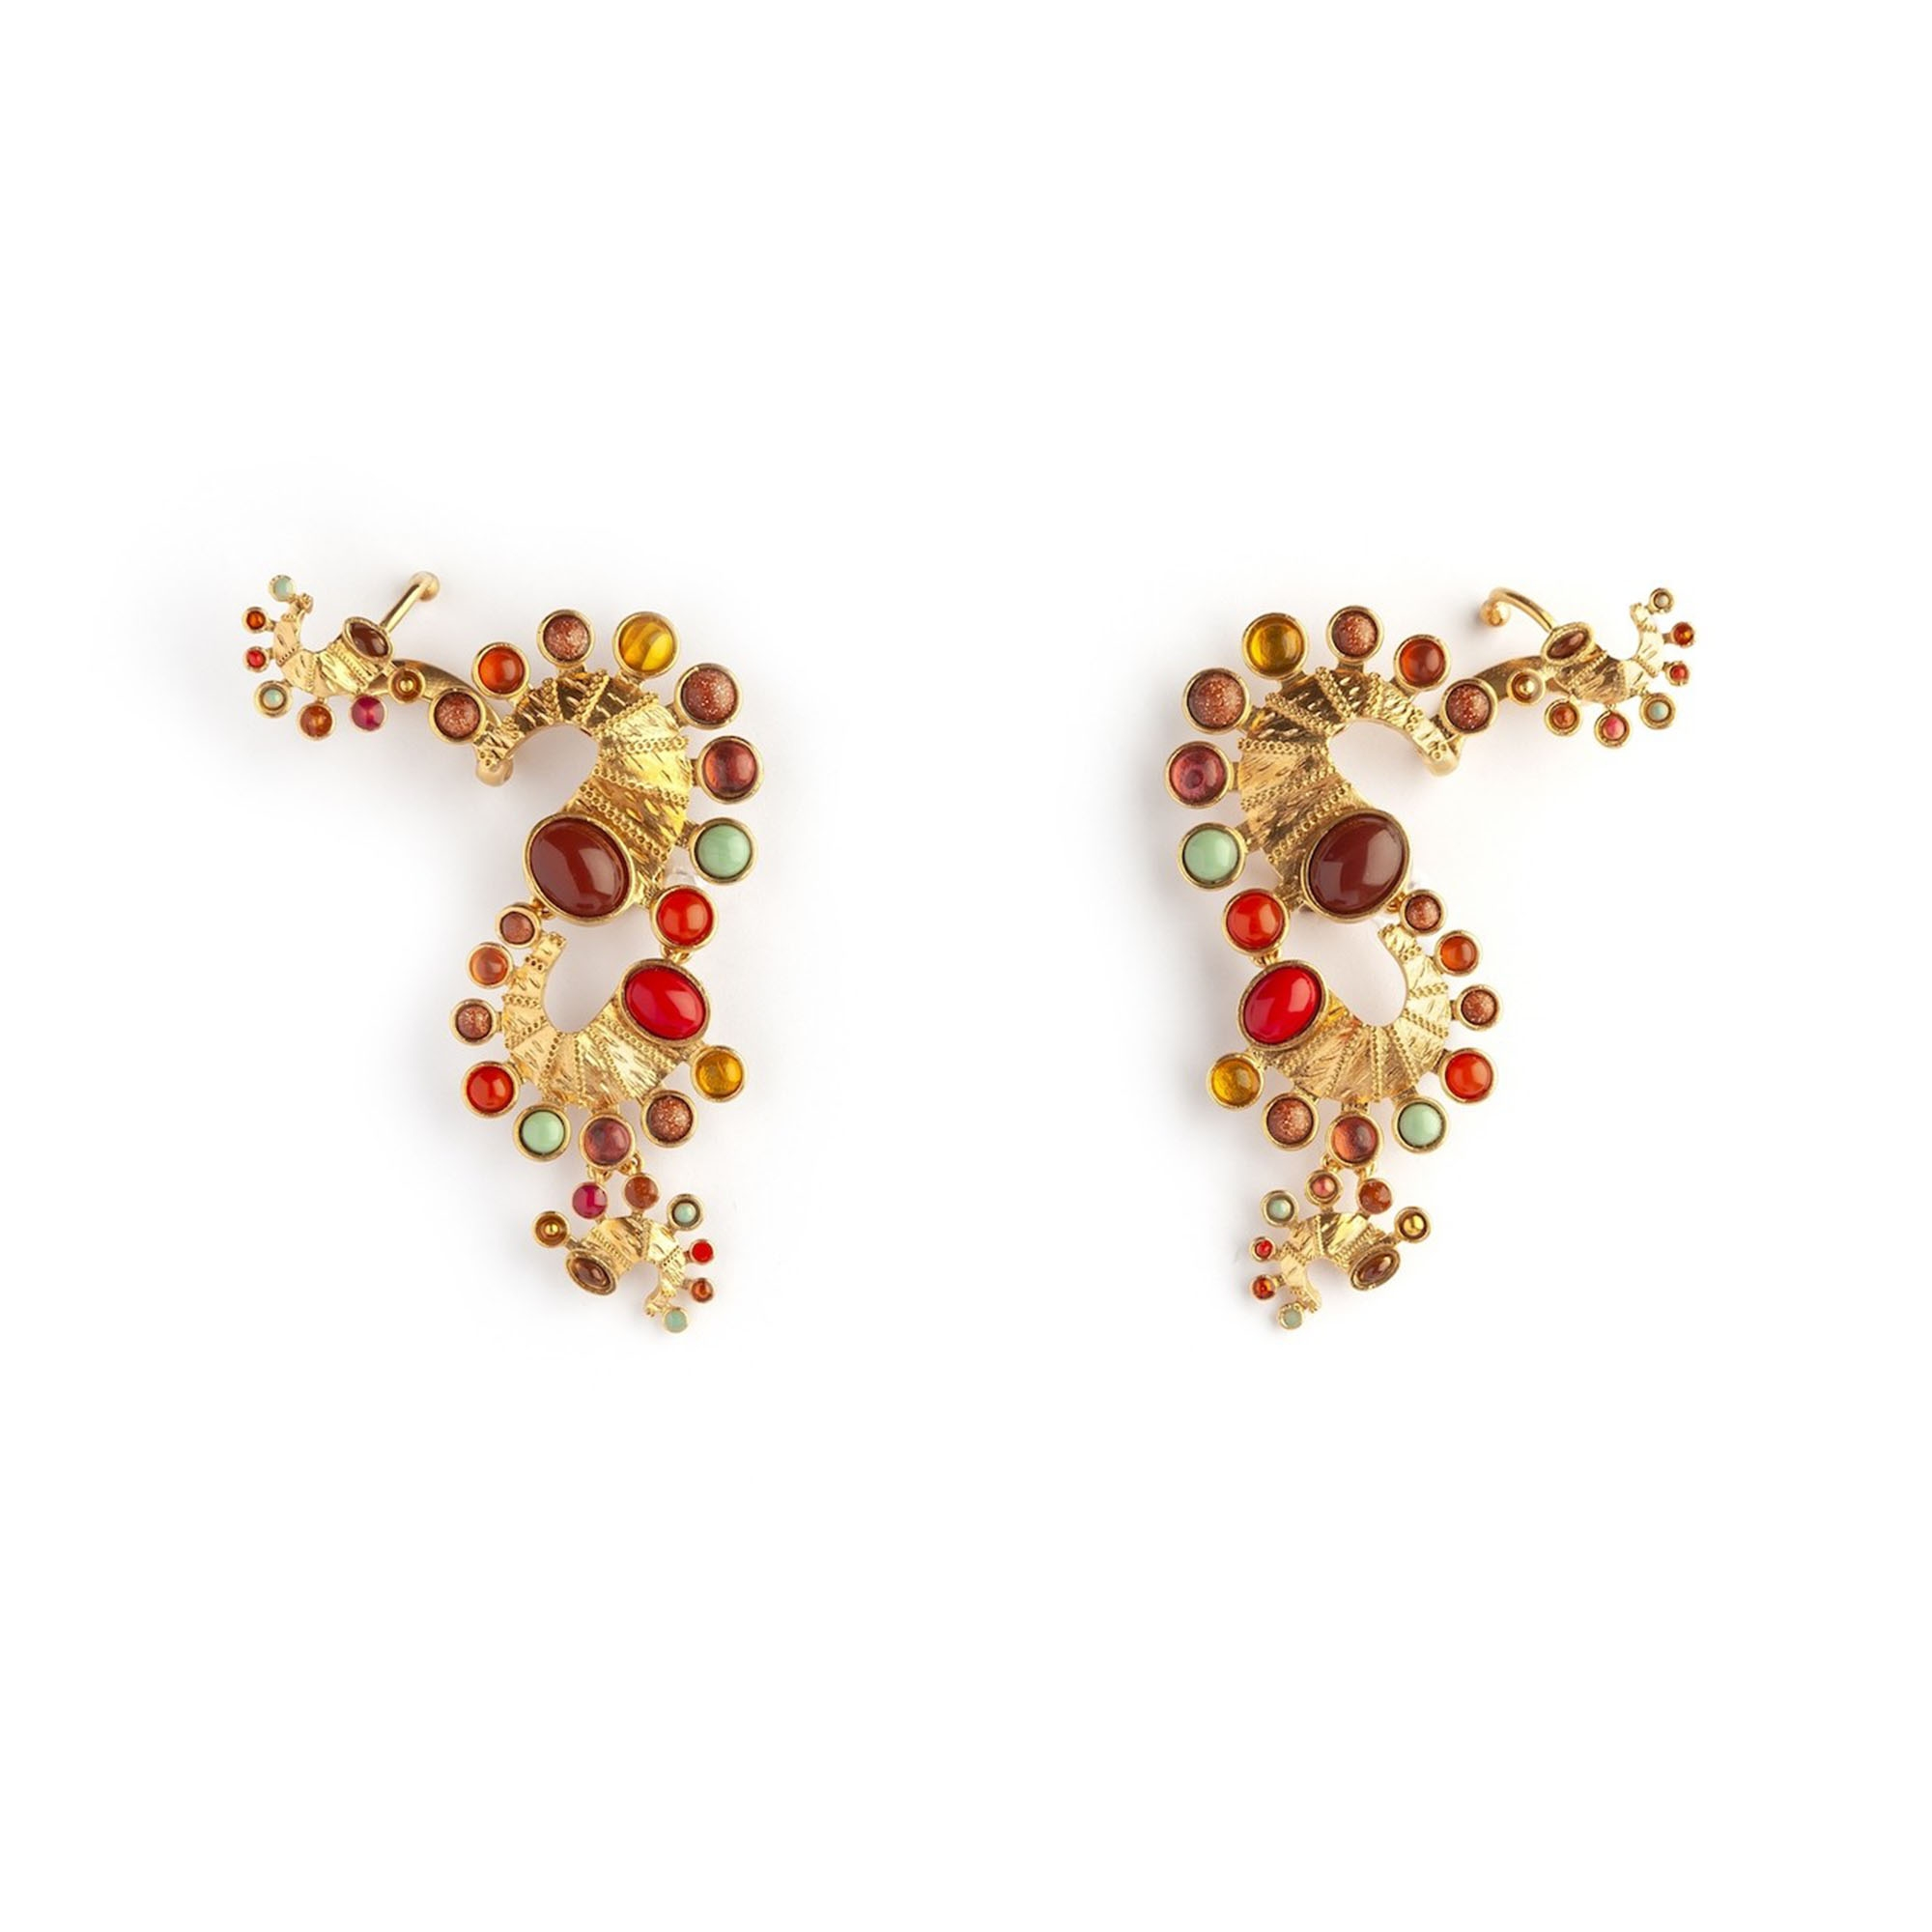 Seahorse Long Luxury Earrings by Sonia Petroff on curated-crowd.com